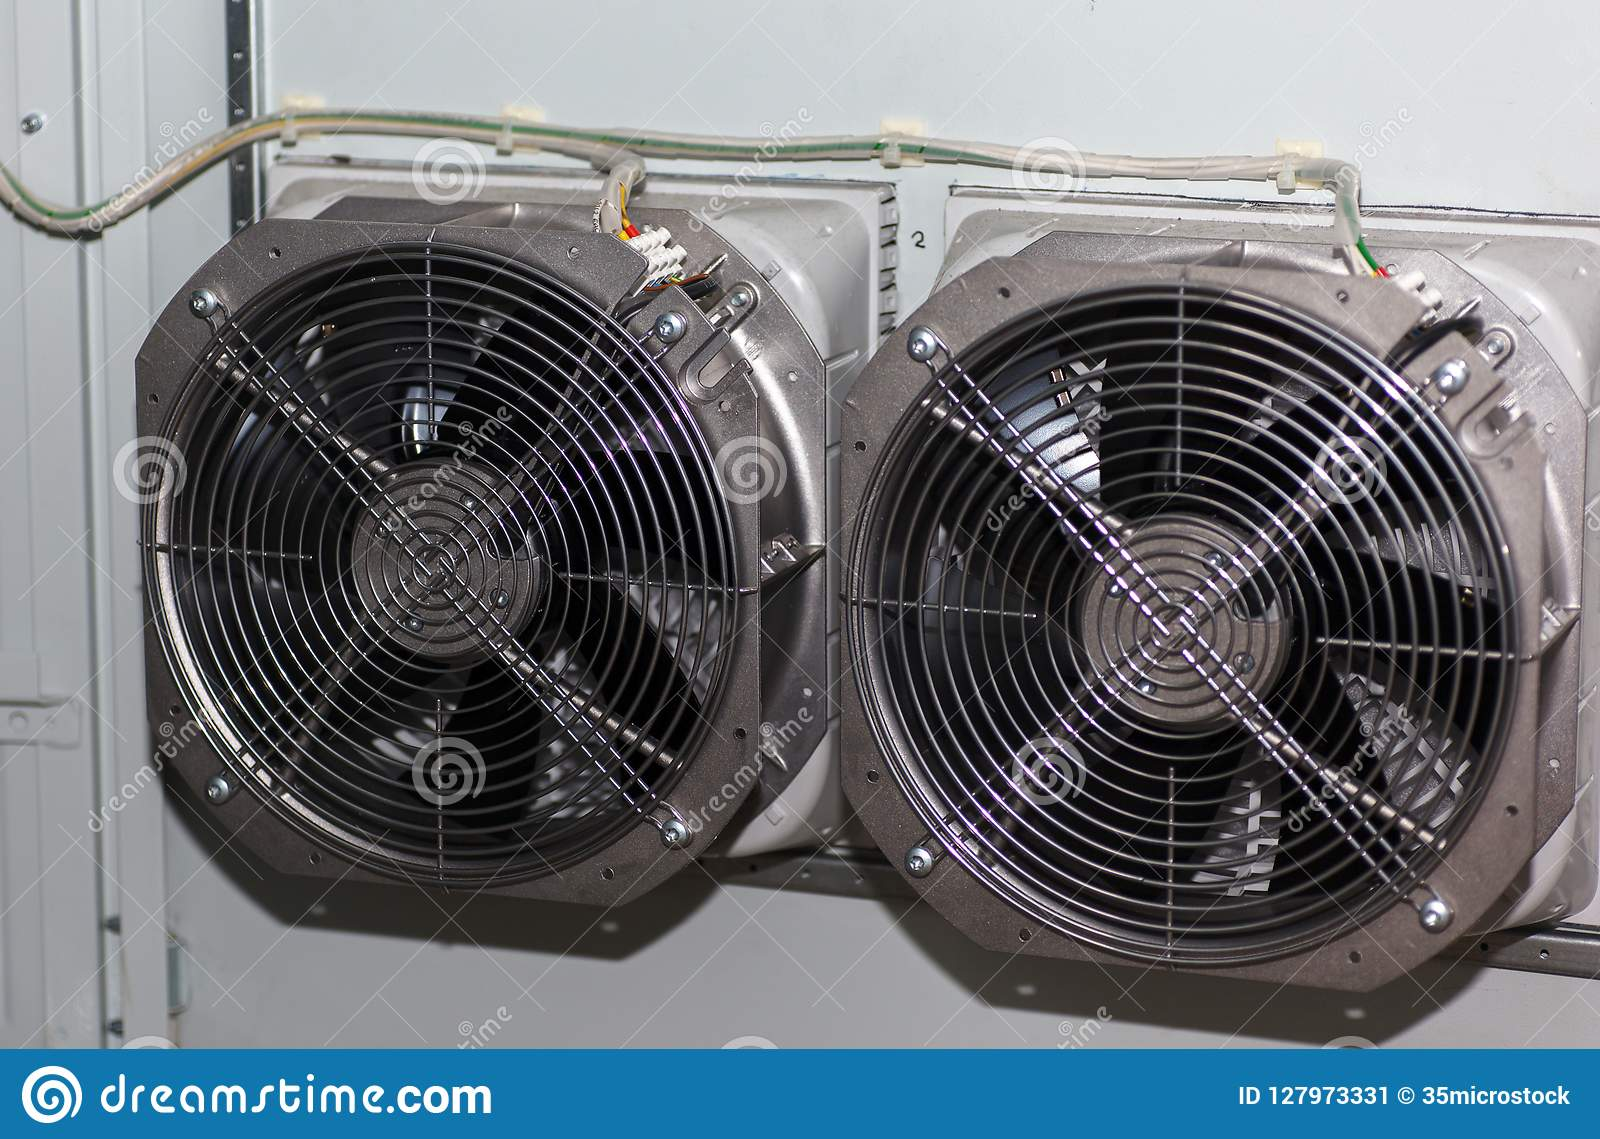 Cooling Fans In The Electric Cabinet Stock Image - Image ...